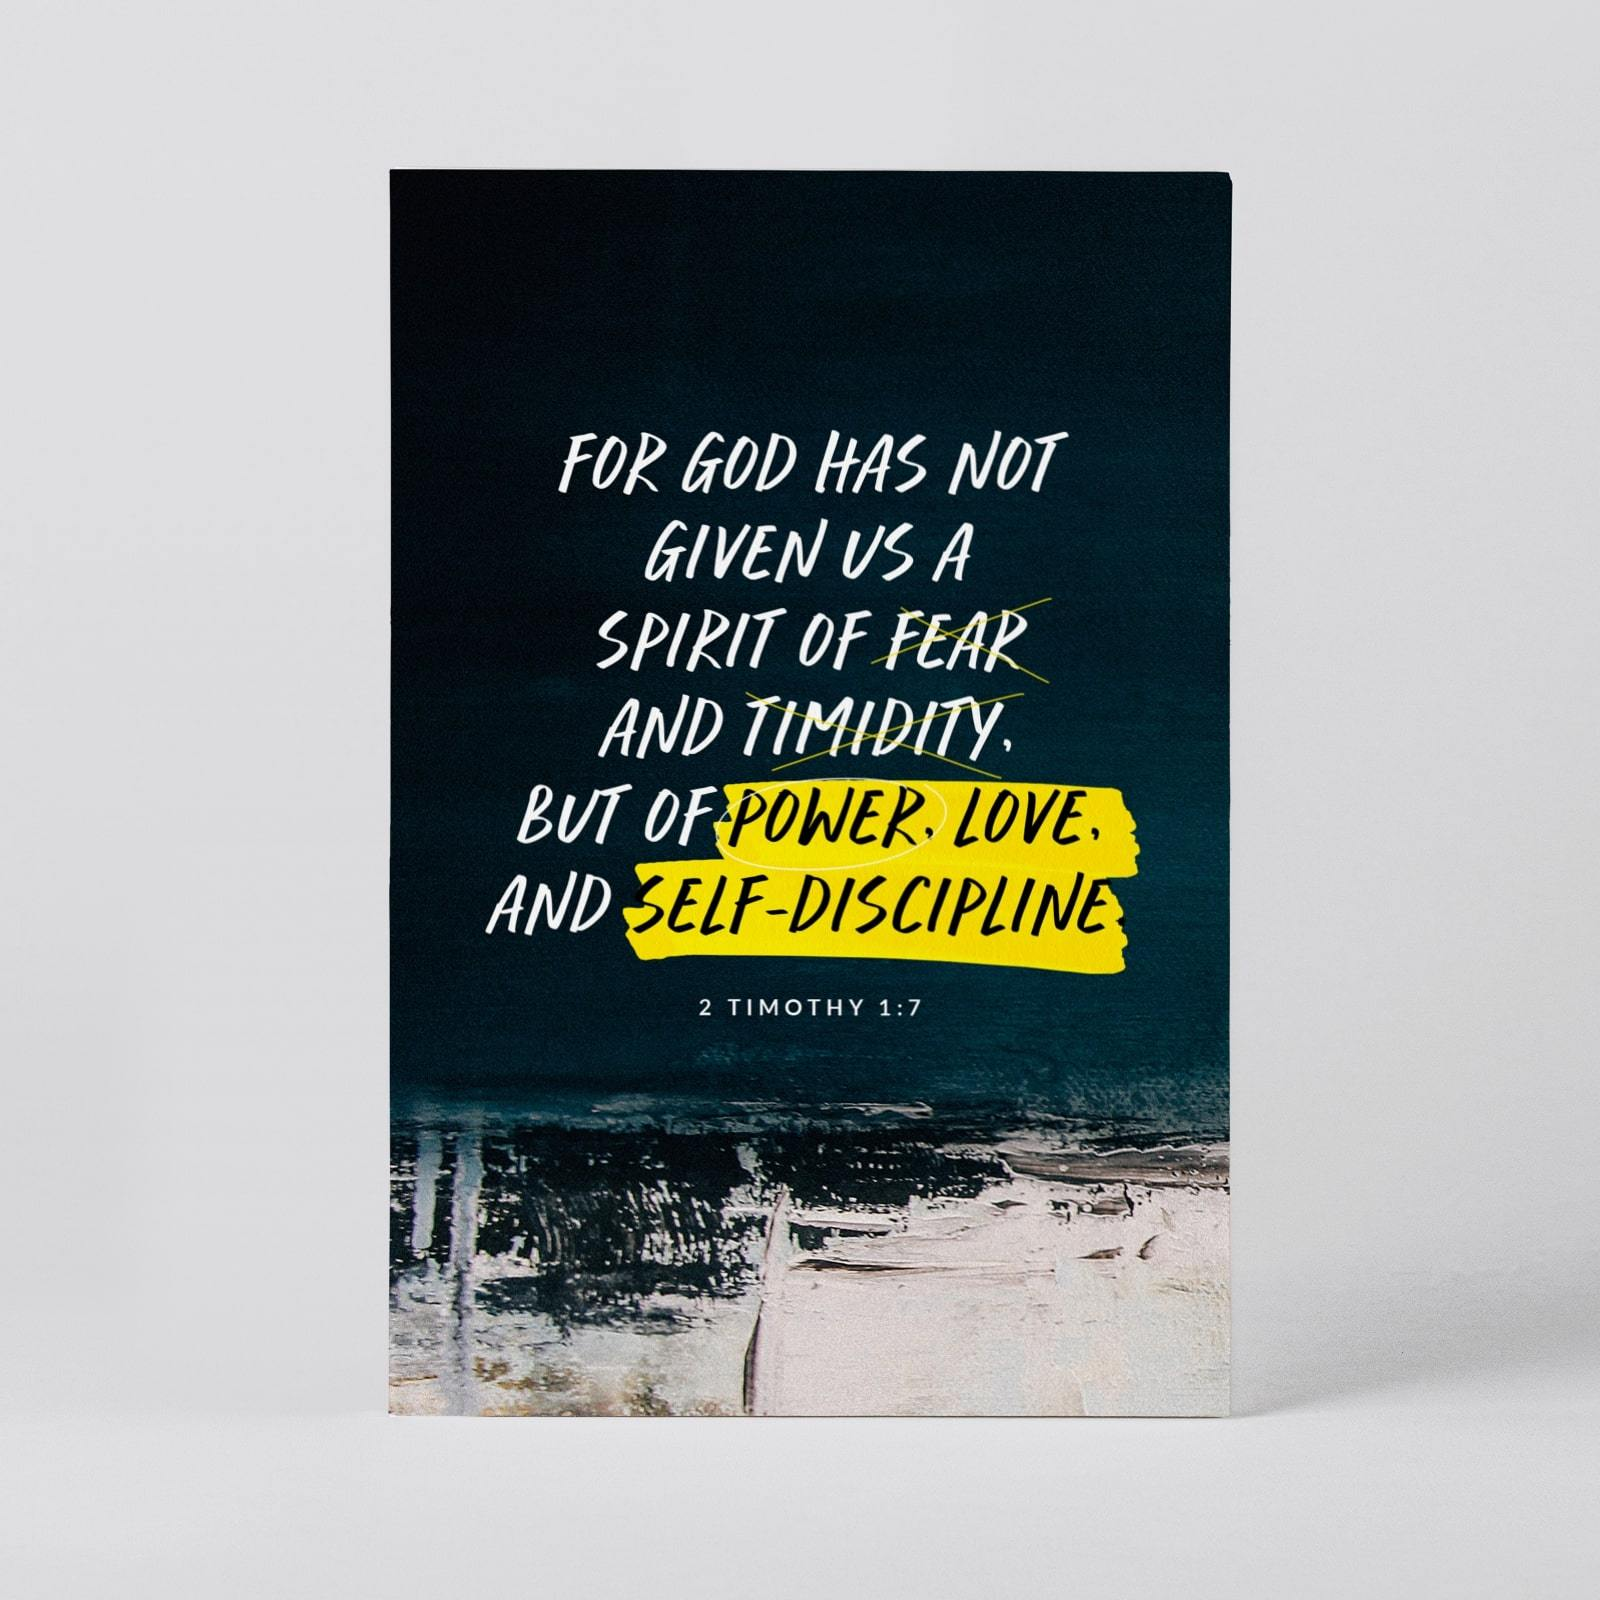 2 Timothy 1:7 Postcard - Postcards - Actseed Co. - Naiise